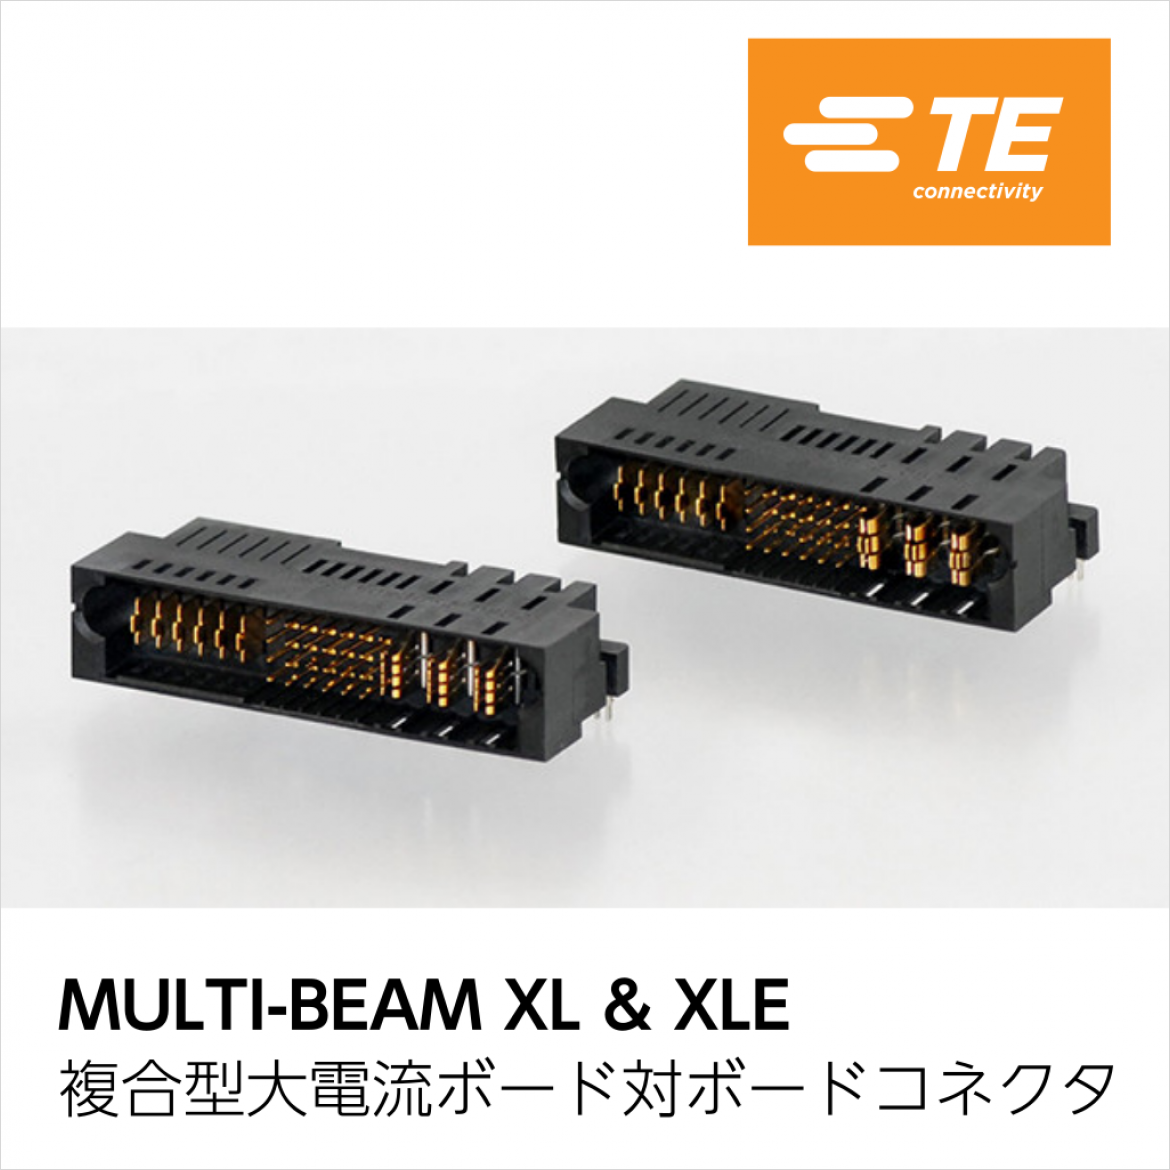 MULTI-BEAM XL & XLE